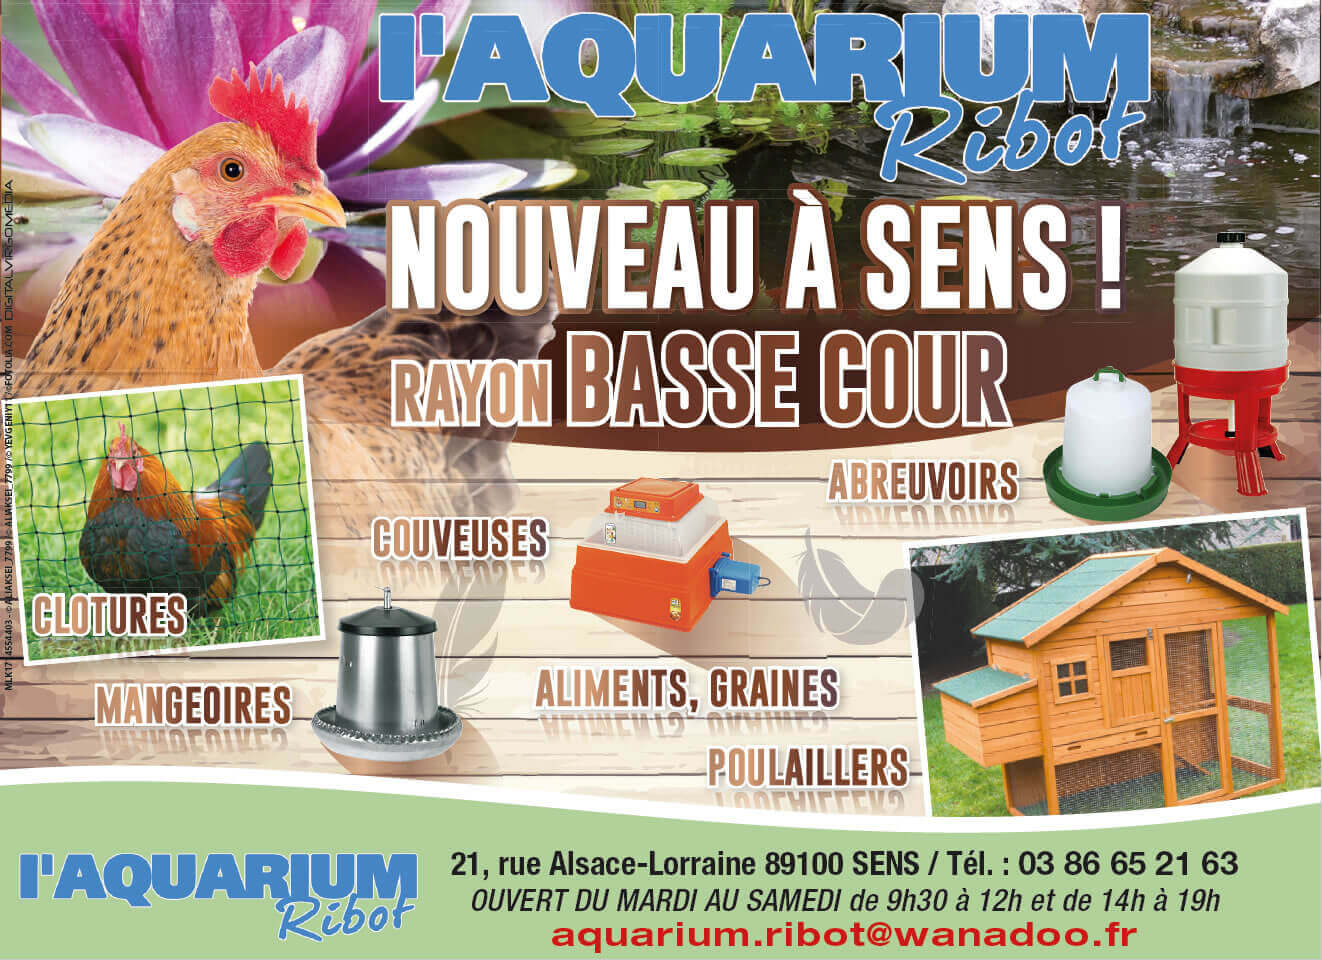 Rayon basse cour